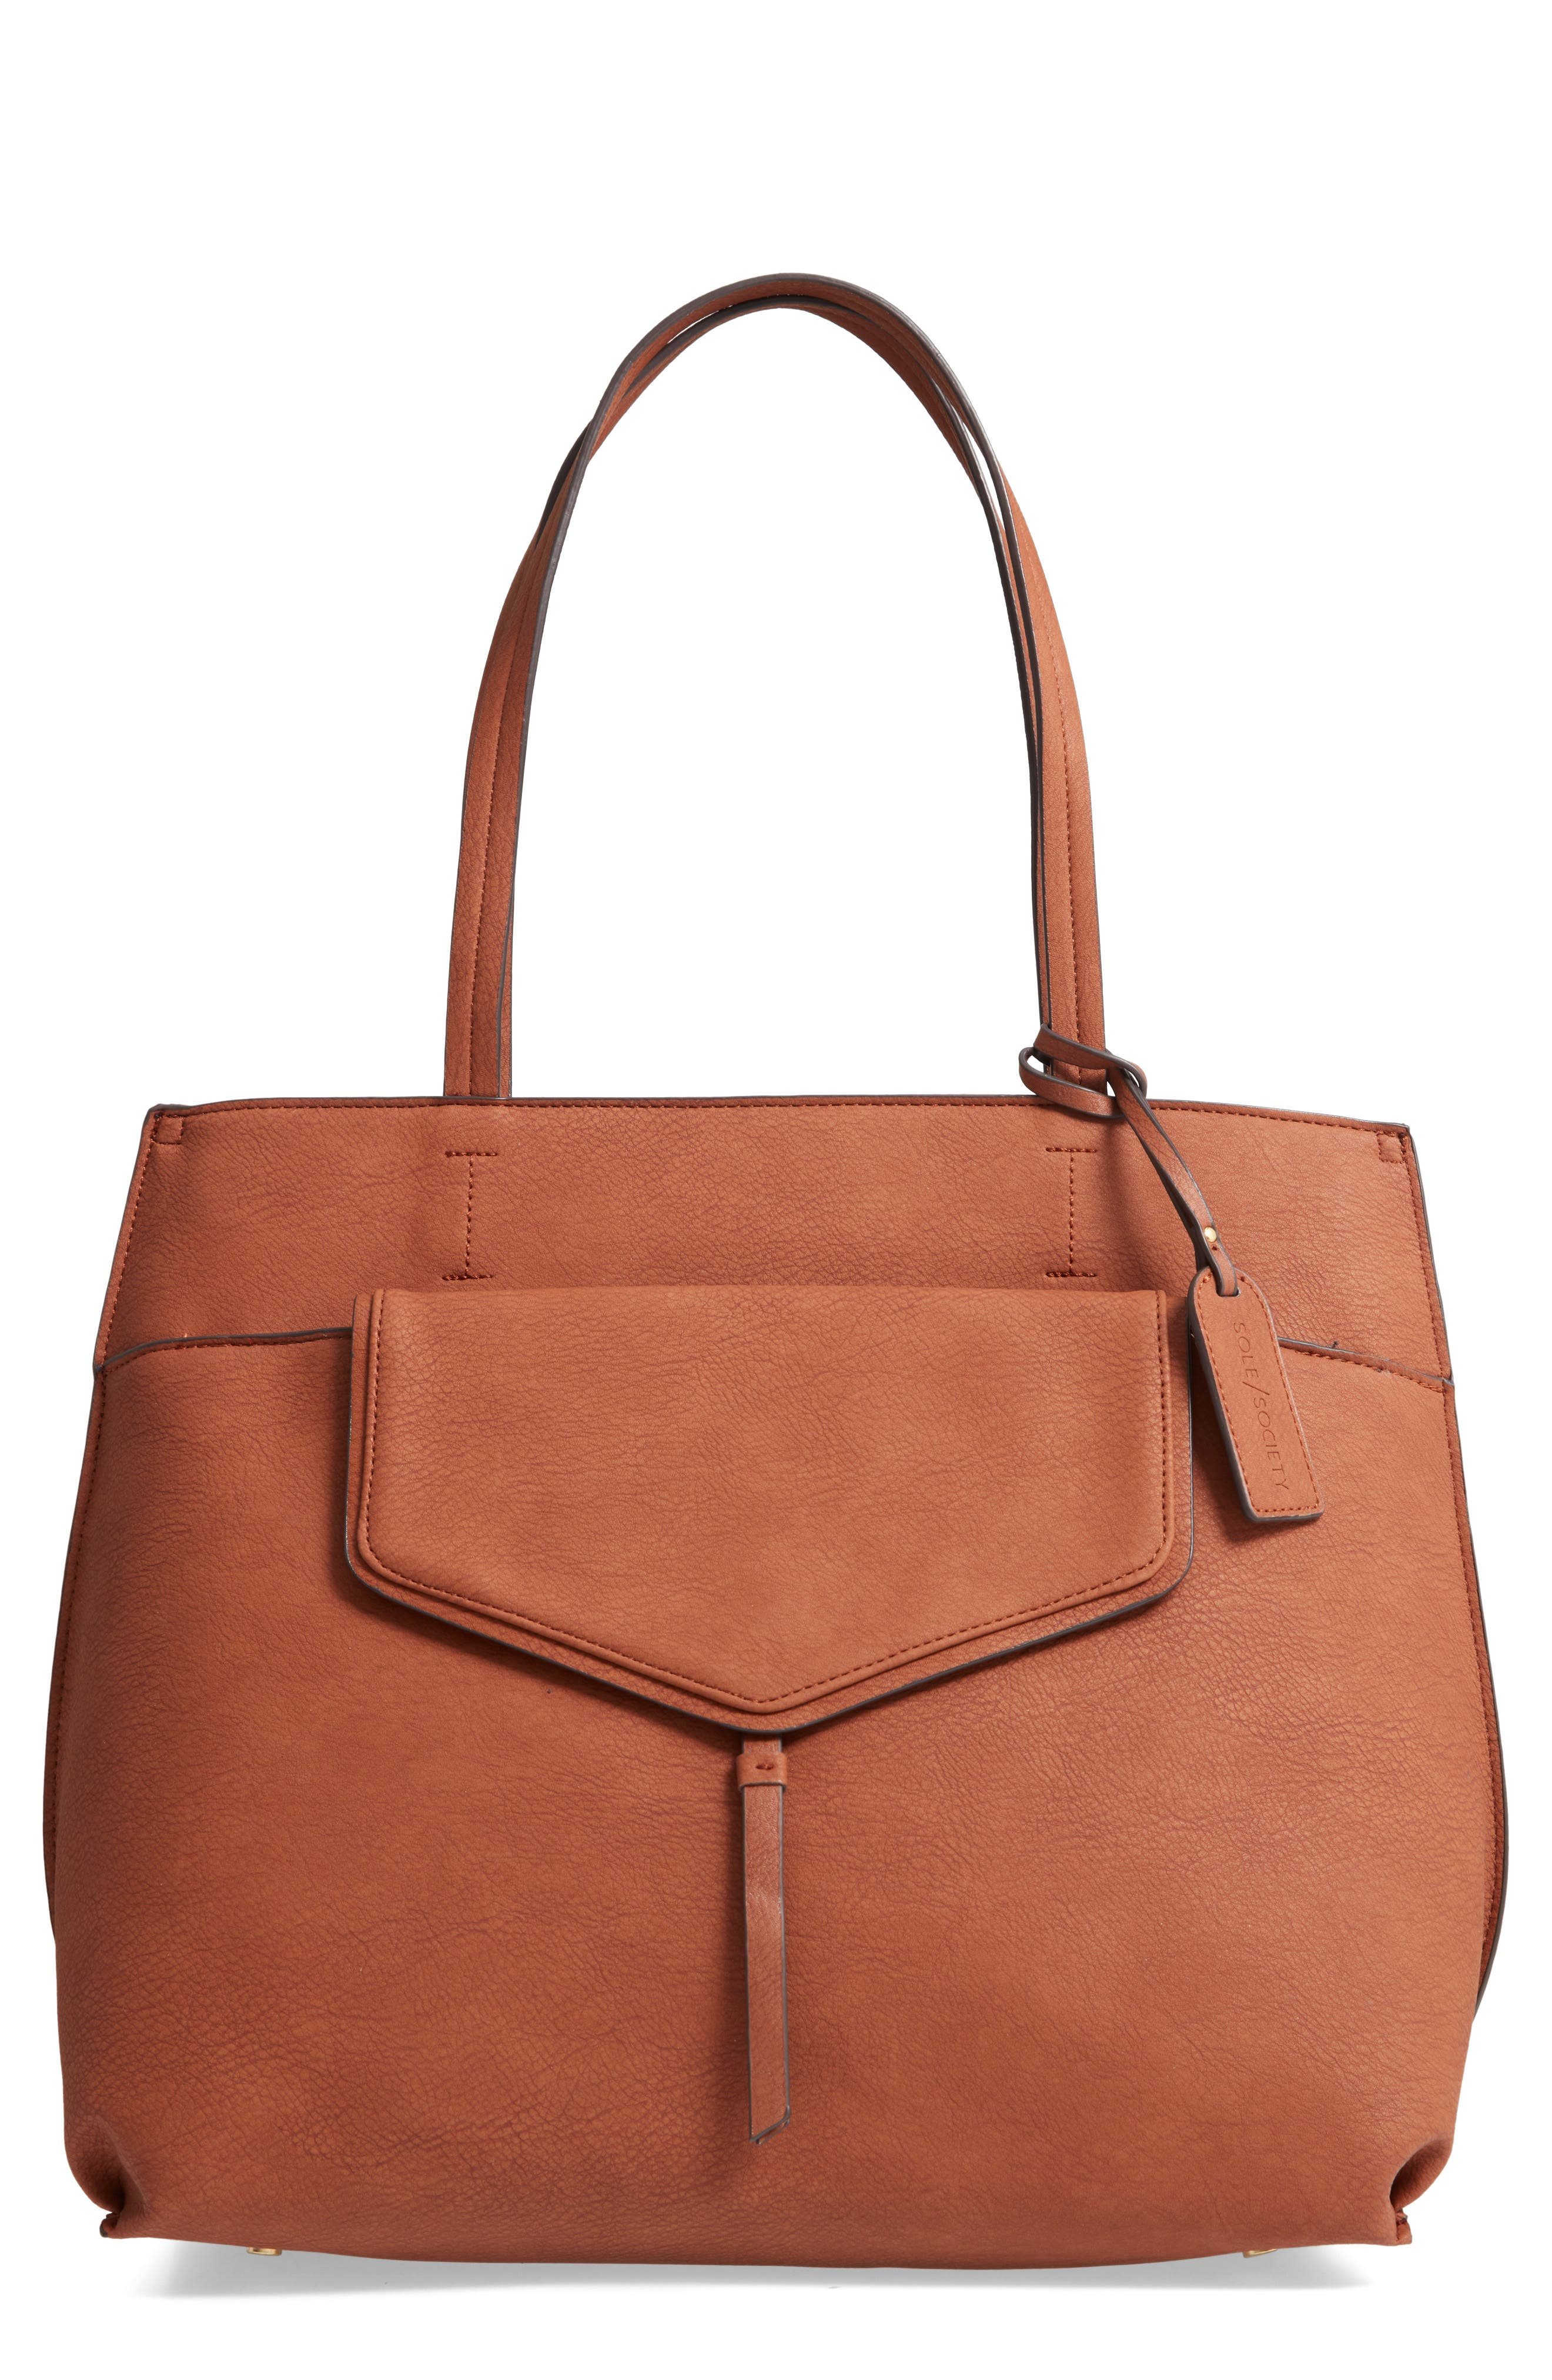 SOLE SOCIETY, Lyndi Faux Leather Tote, Main thumbnail 1, color, COGNAC